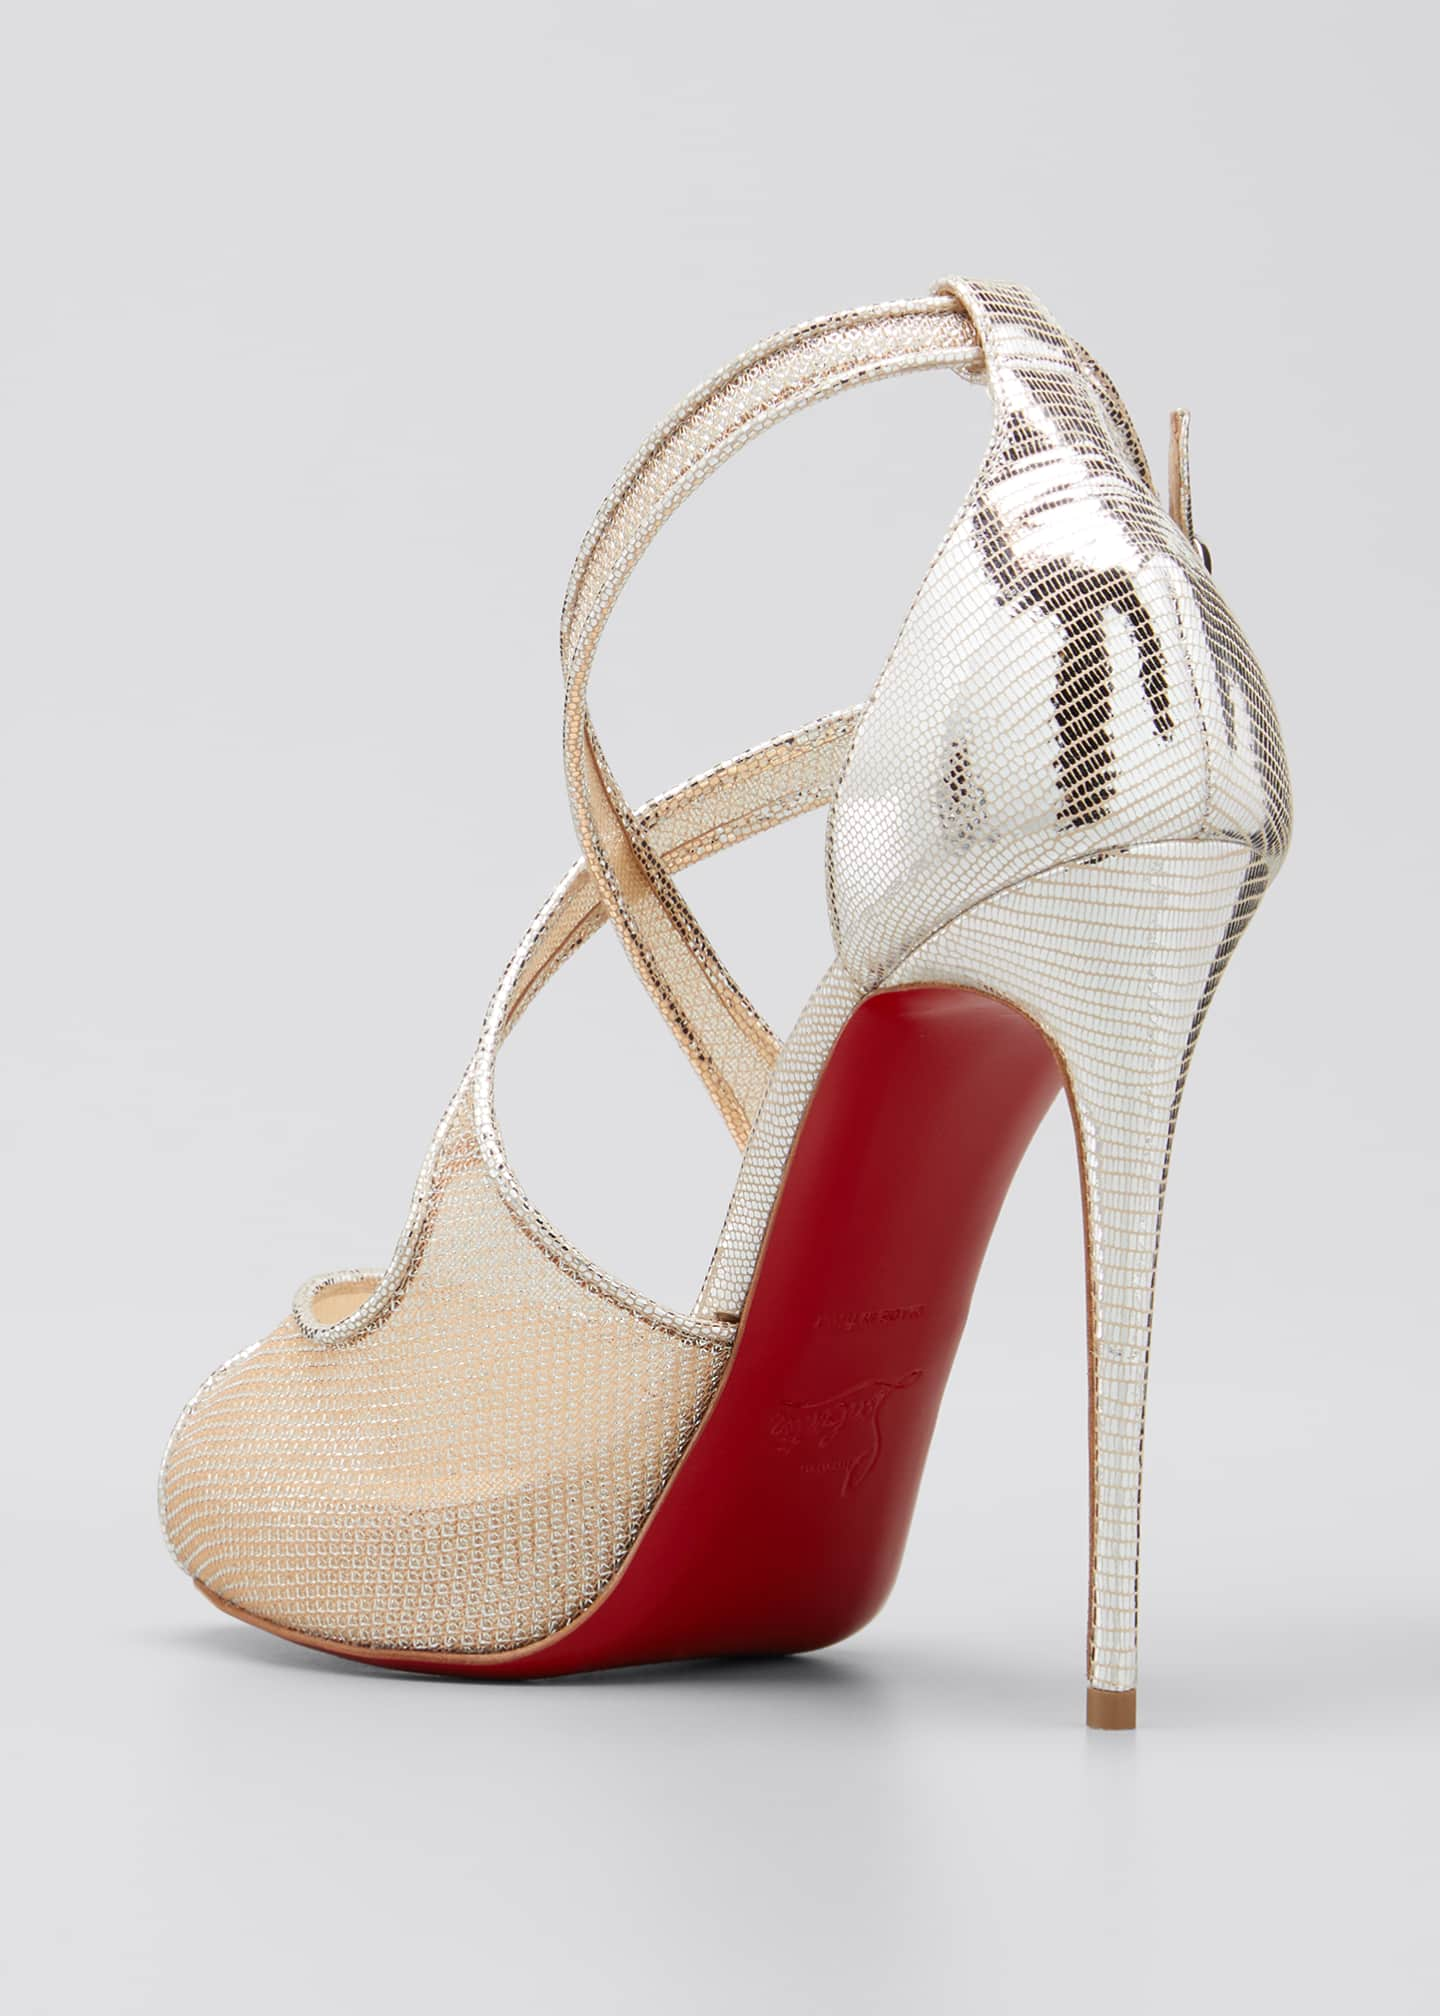 Image 2 of 3: Mariacar 120mm Metallic Red Sole Sandals